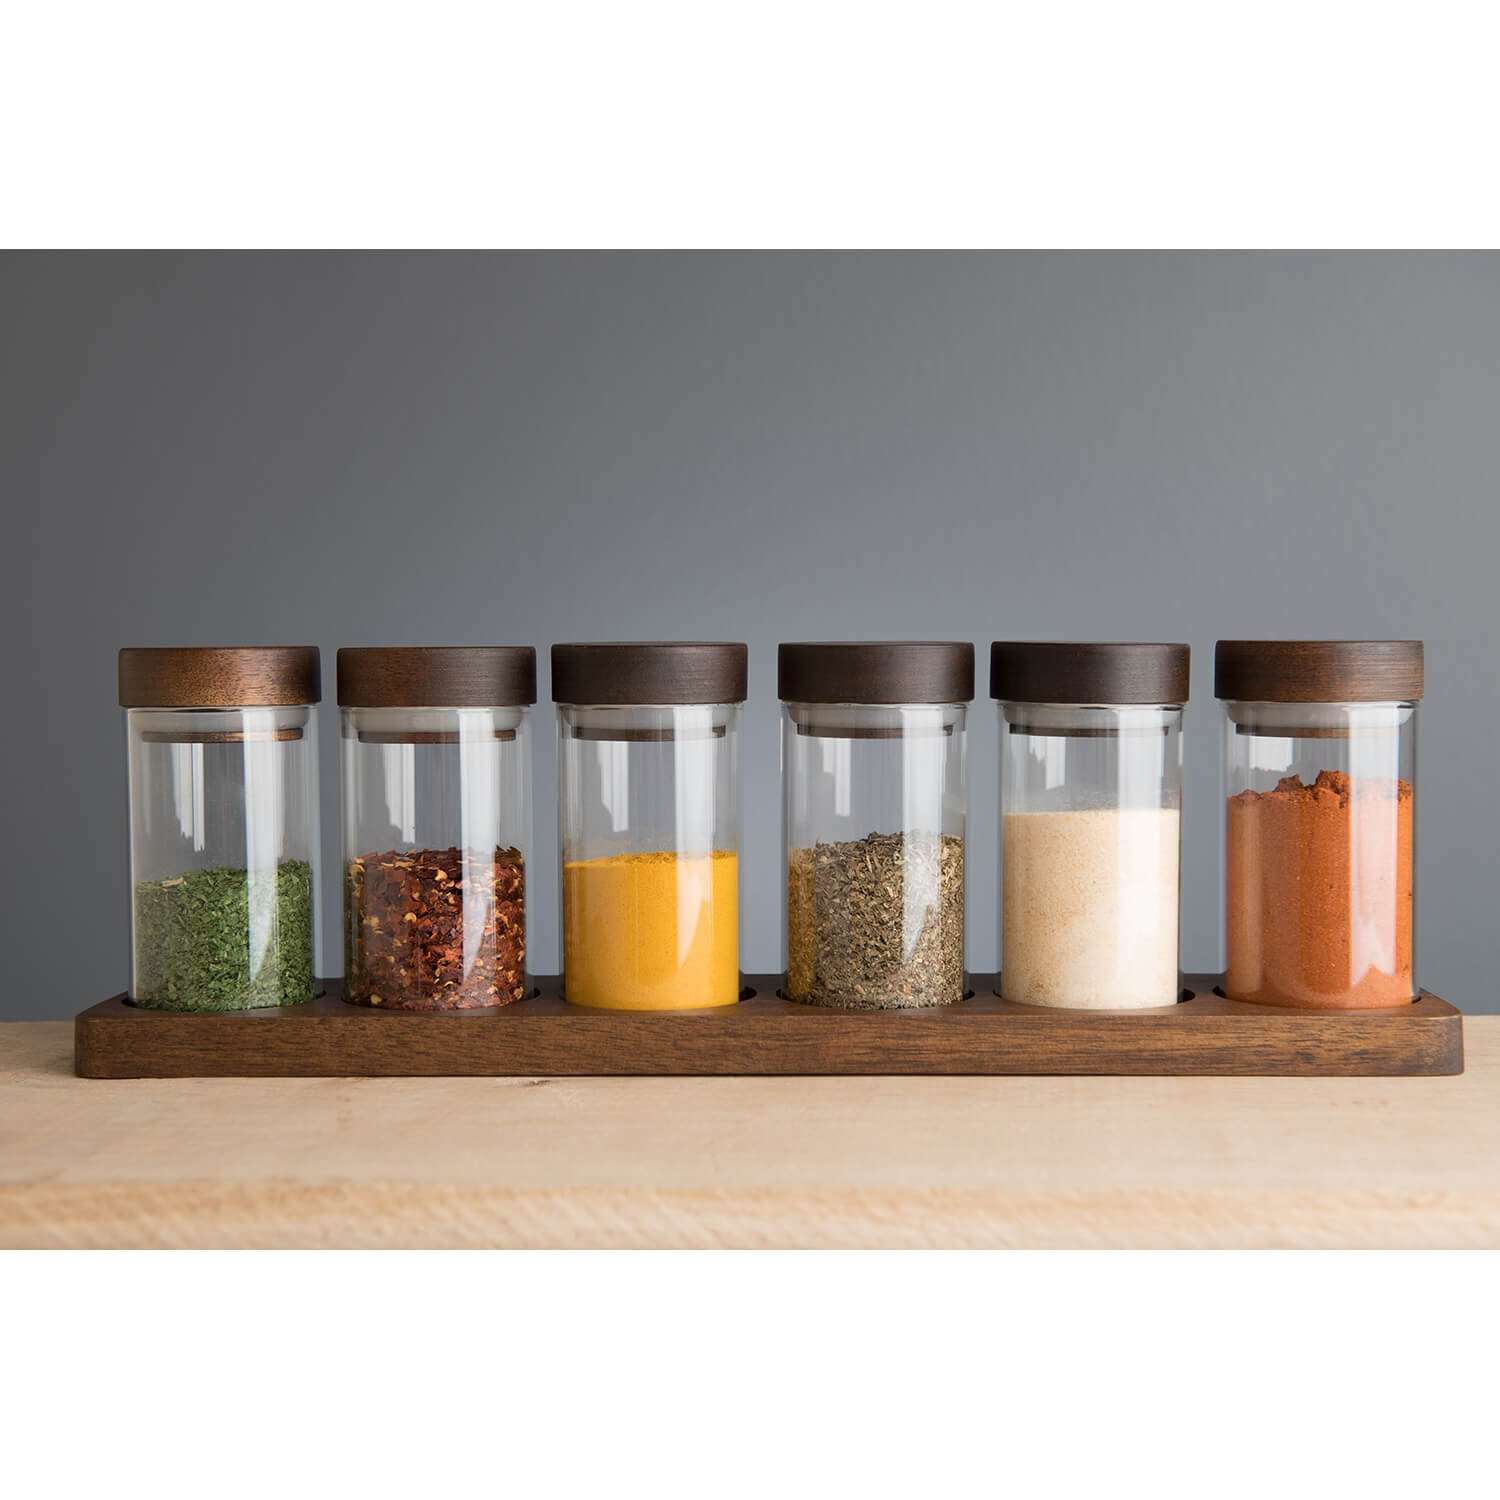 Image of Artisan Street, 6 Spice Jars With Board, Clear